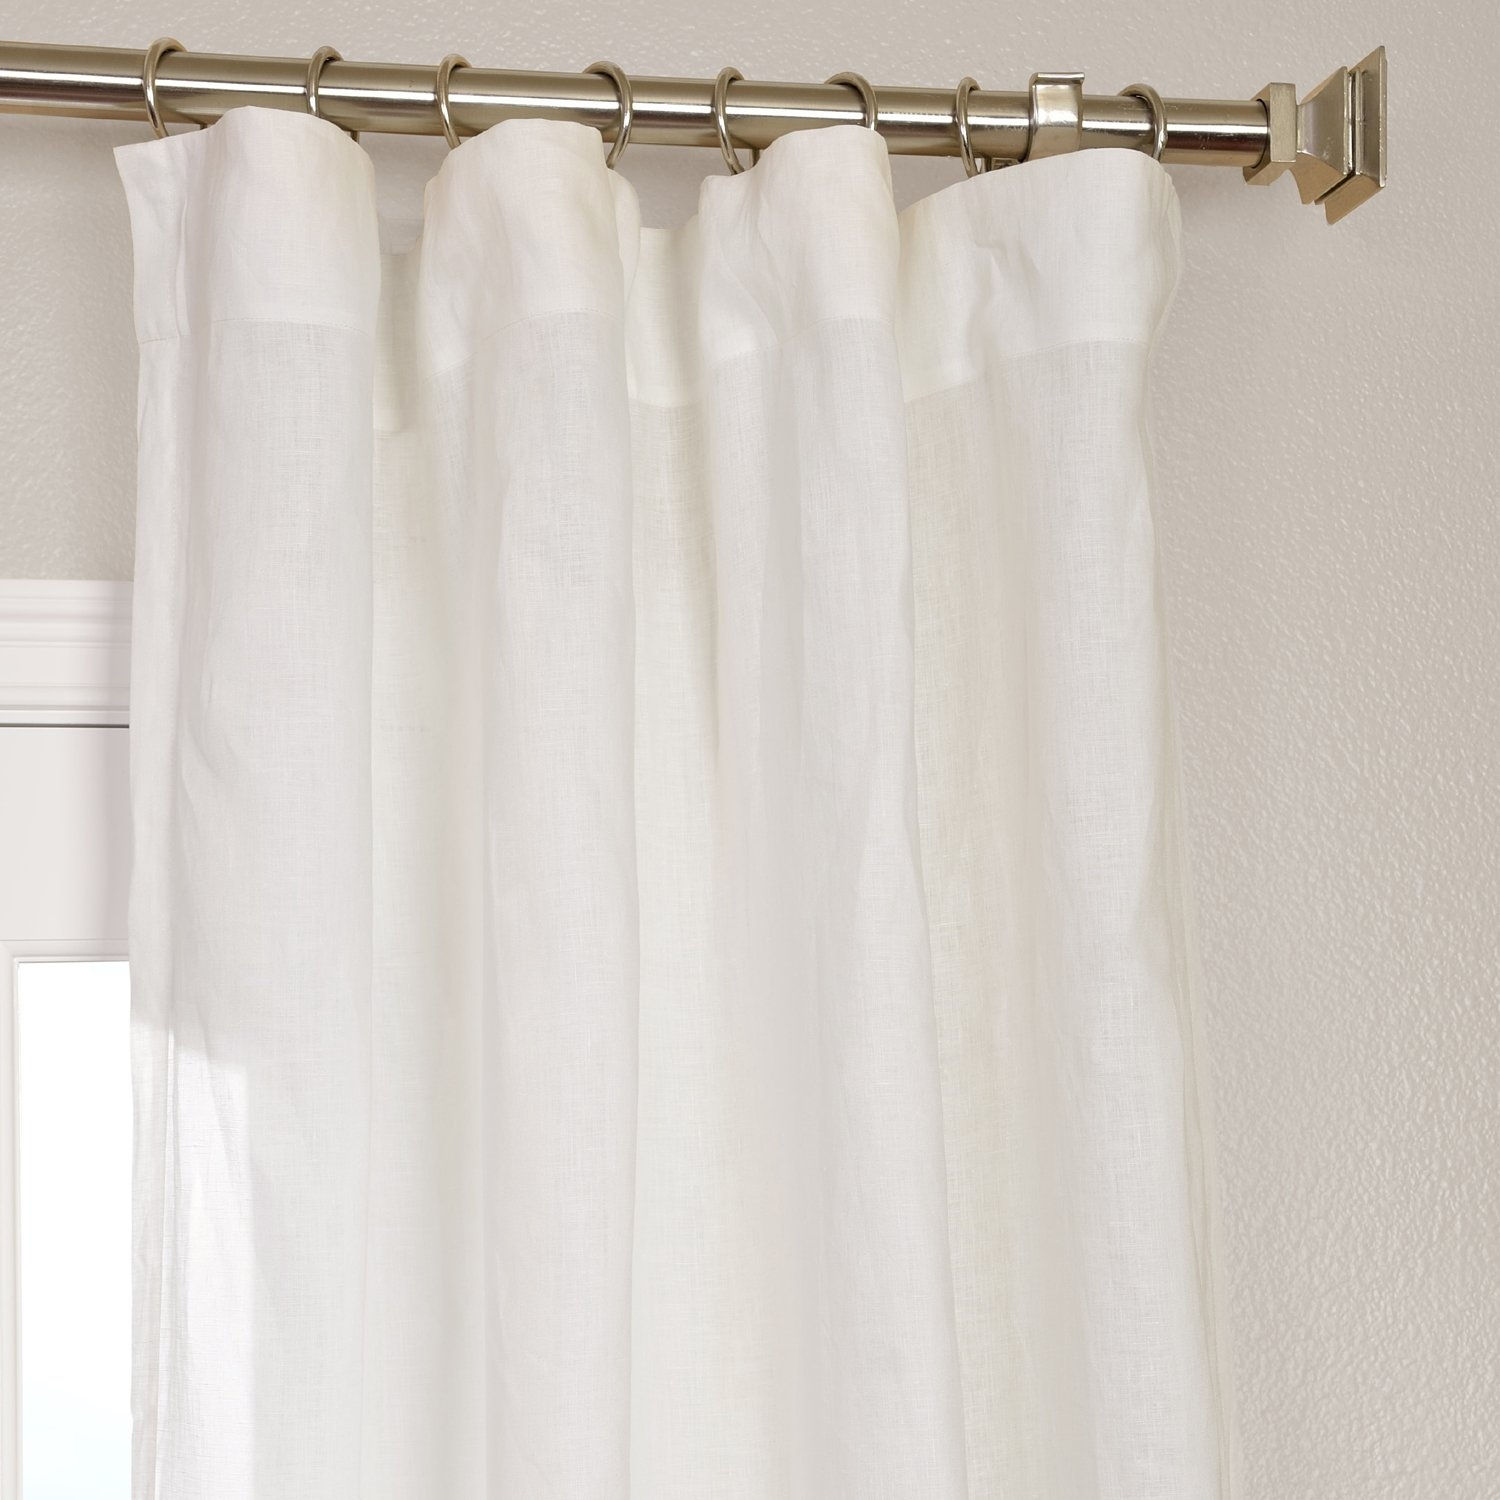 Half Price Drapes Signature Solid Sheer Rod Pocket Single Curtain Pertaining To Linen Gauze Curtains (Image 6 of 15)